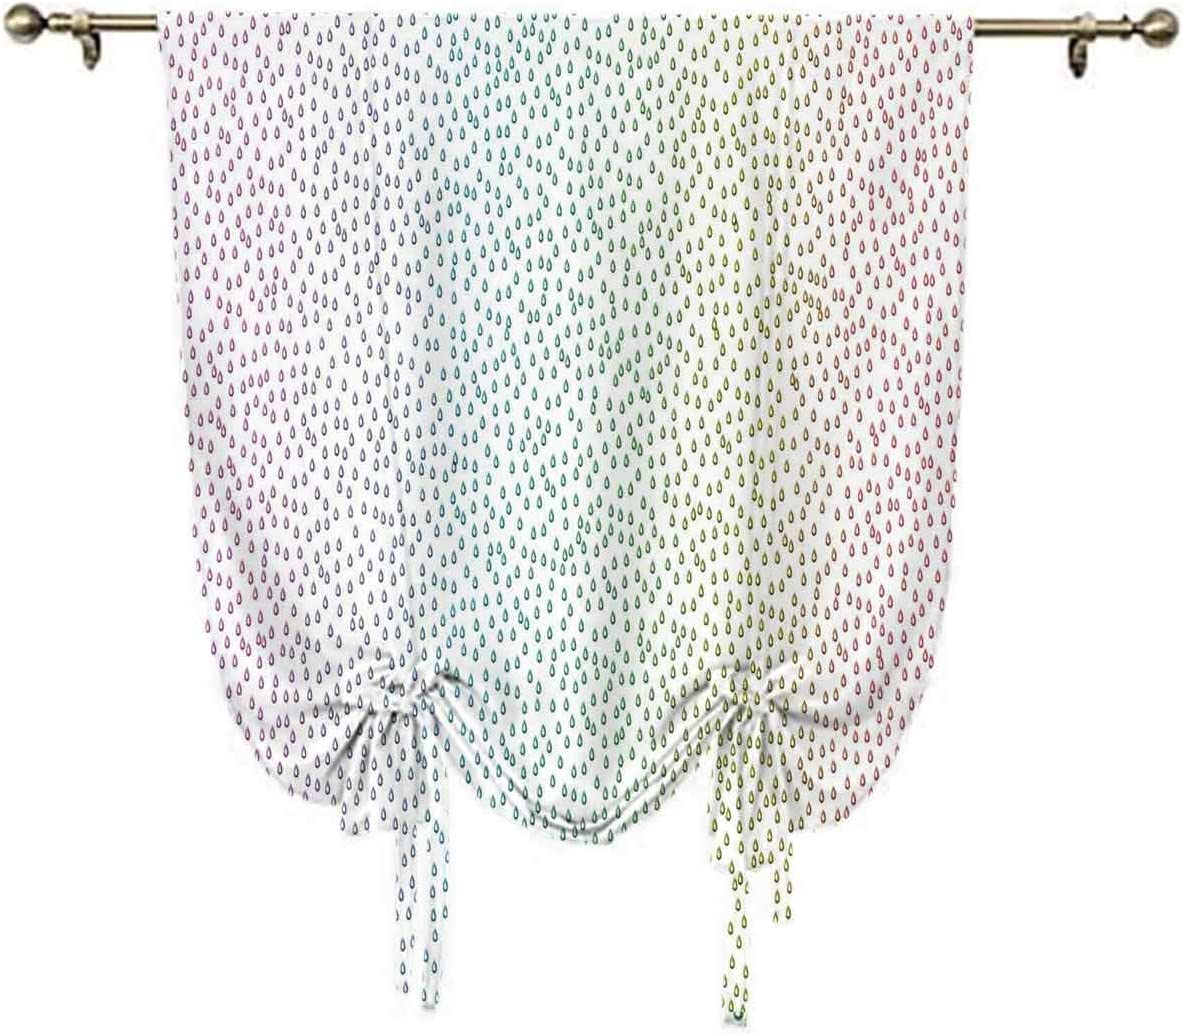 oobon Farmhouse Decor Tie Manufacturer regenerated product Up Fig Panels Gradient Online limited product Shades Downpour